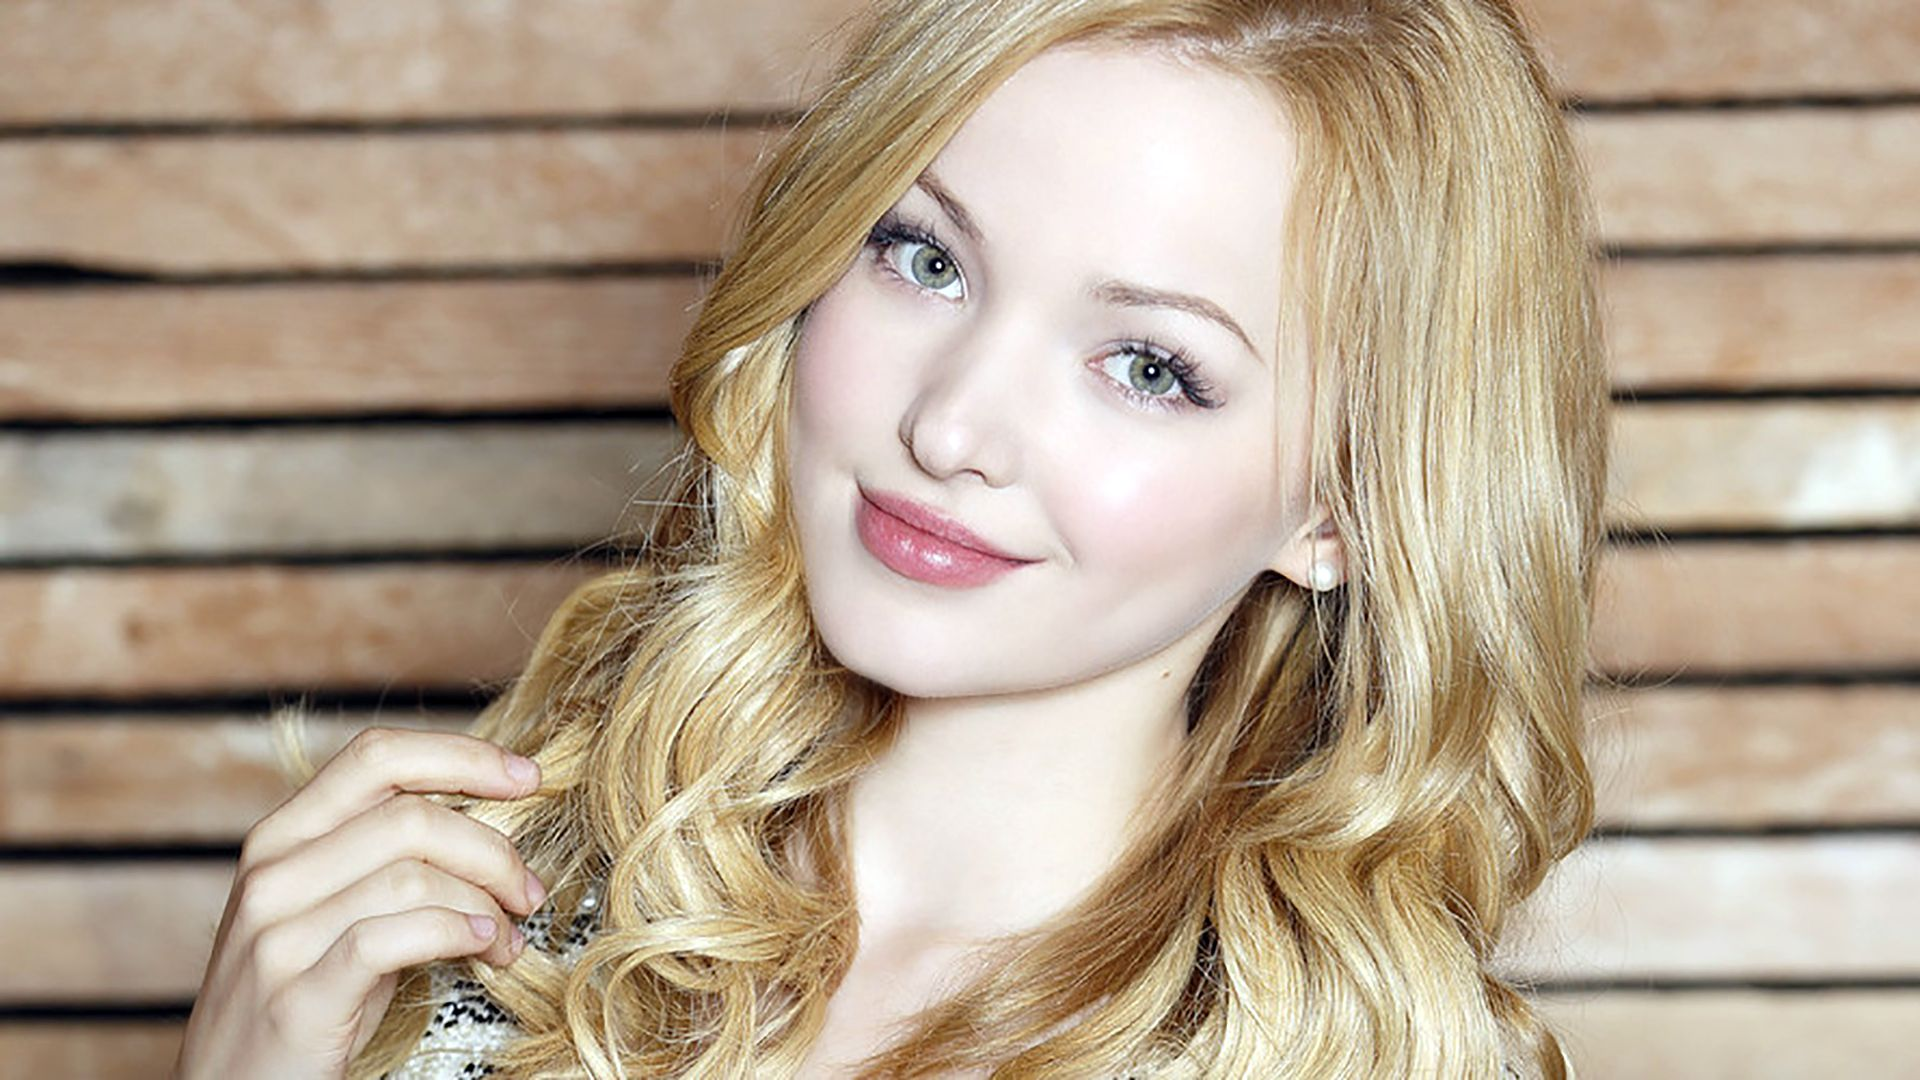 Dove Cameron Wallpaper Image - Dove Cameron Wallpaper Image